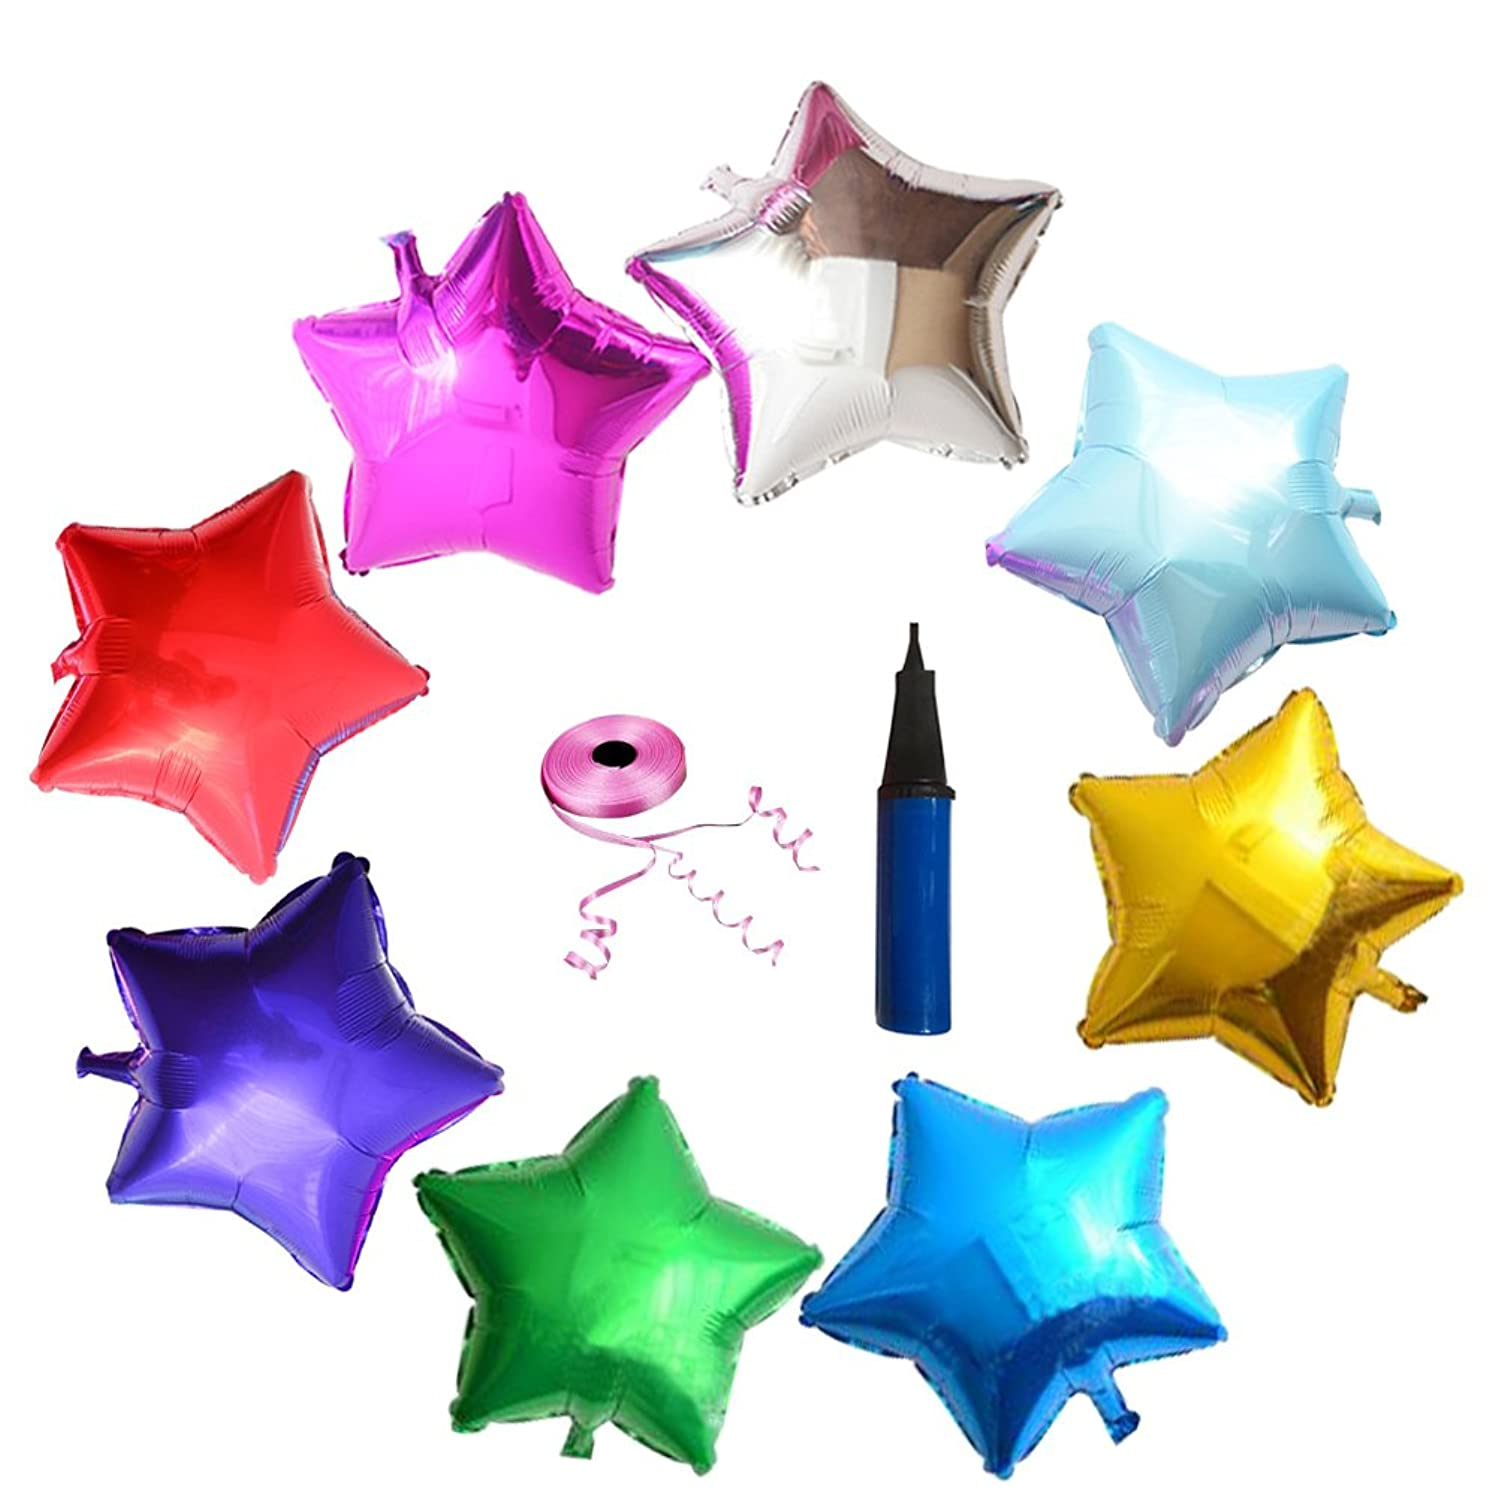 Yungone 18 Inch Star Shape Foil Balloons. Foil Mylar Aluminium Balloons.Metal Foil Balloons.Balloon Ribbon Pink and Hand Held Air Inflator. Random Color.